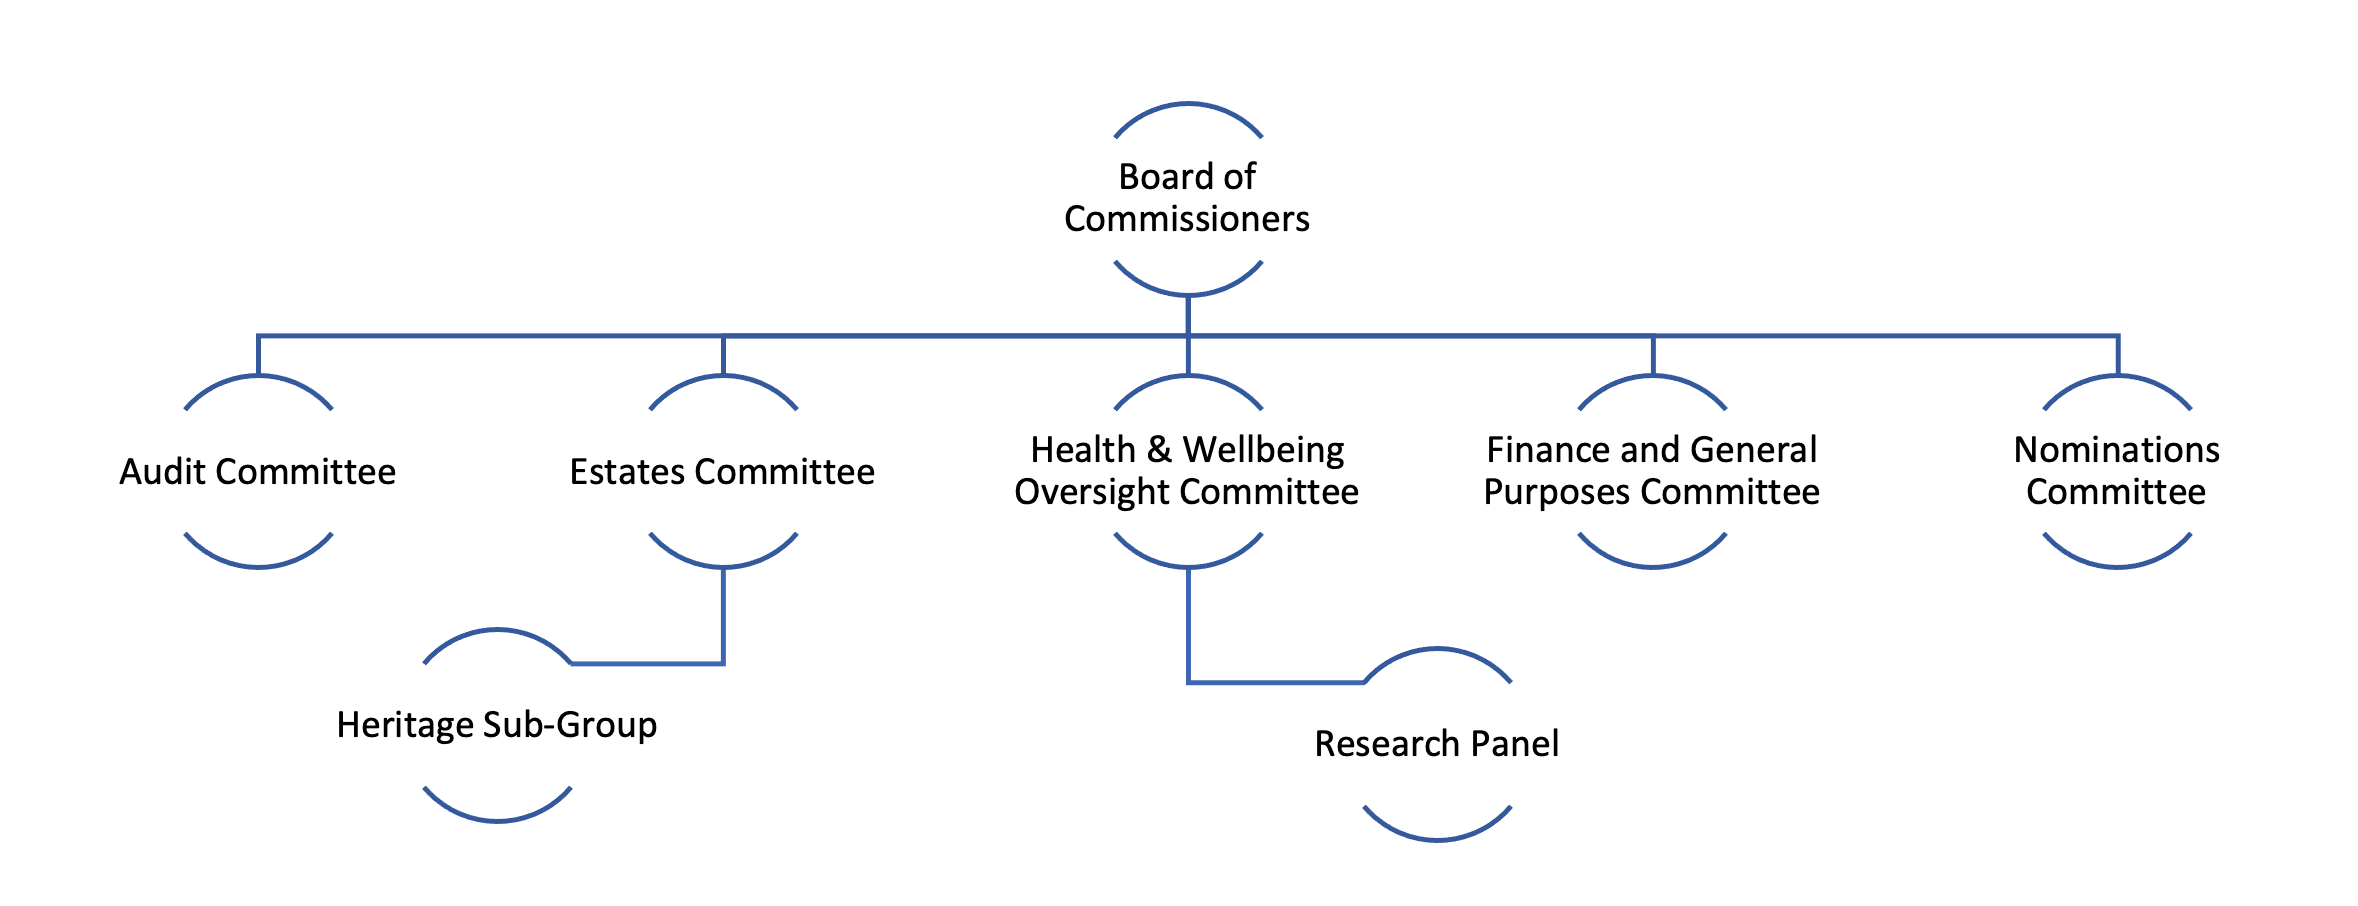 Board of Commissioners Structure